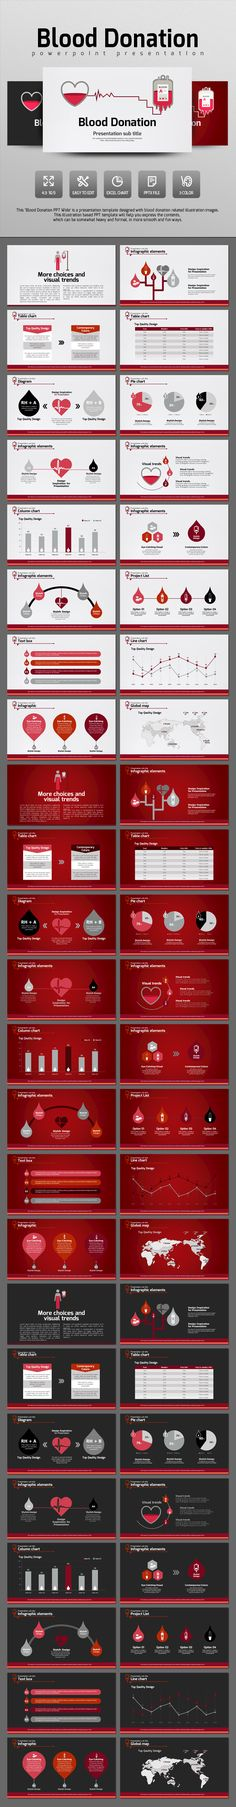 Blood Donation (PowerPoint Templates)